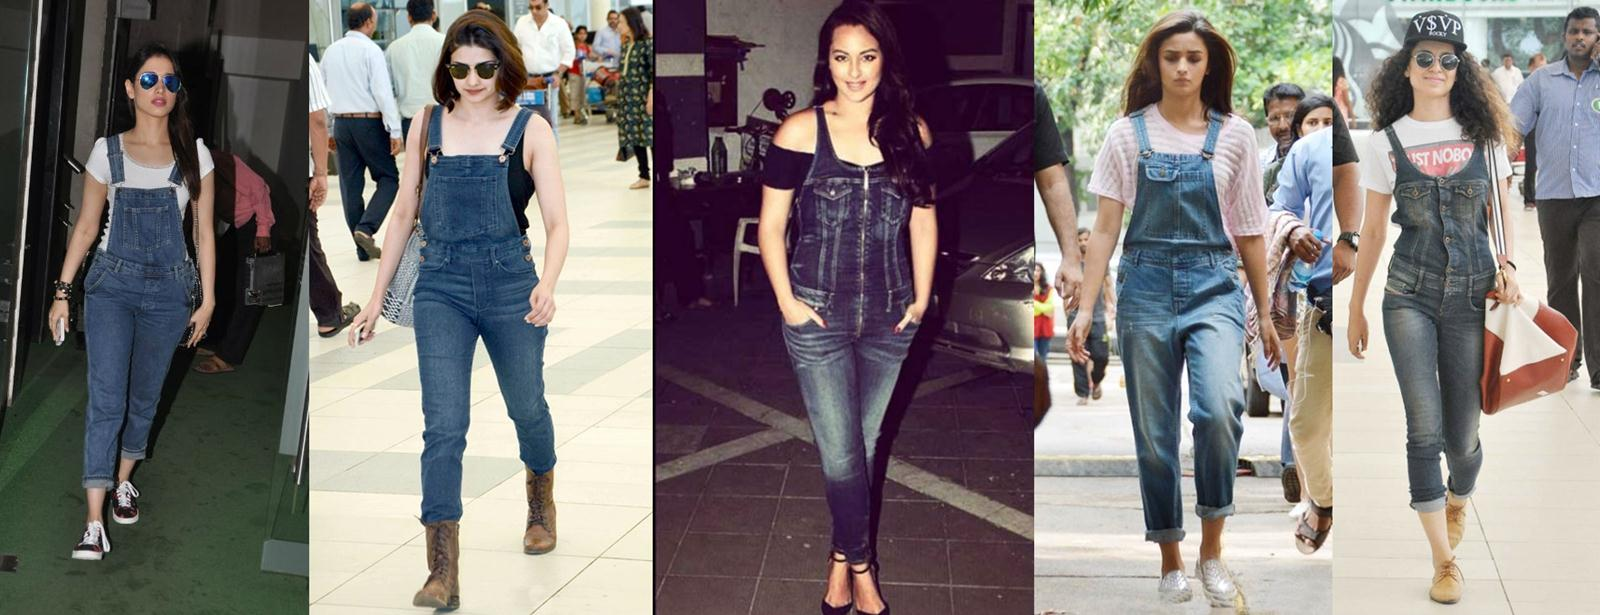 Best of Bollywood Fashion Trends in 2015 | With Pictures - Dungarees